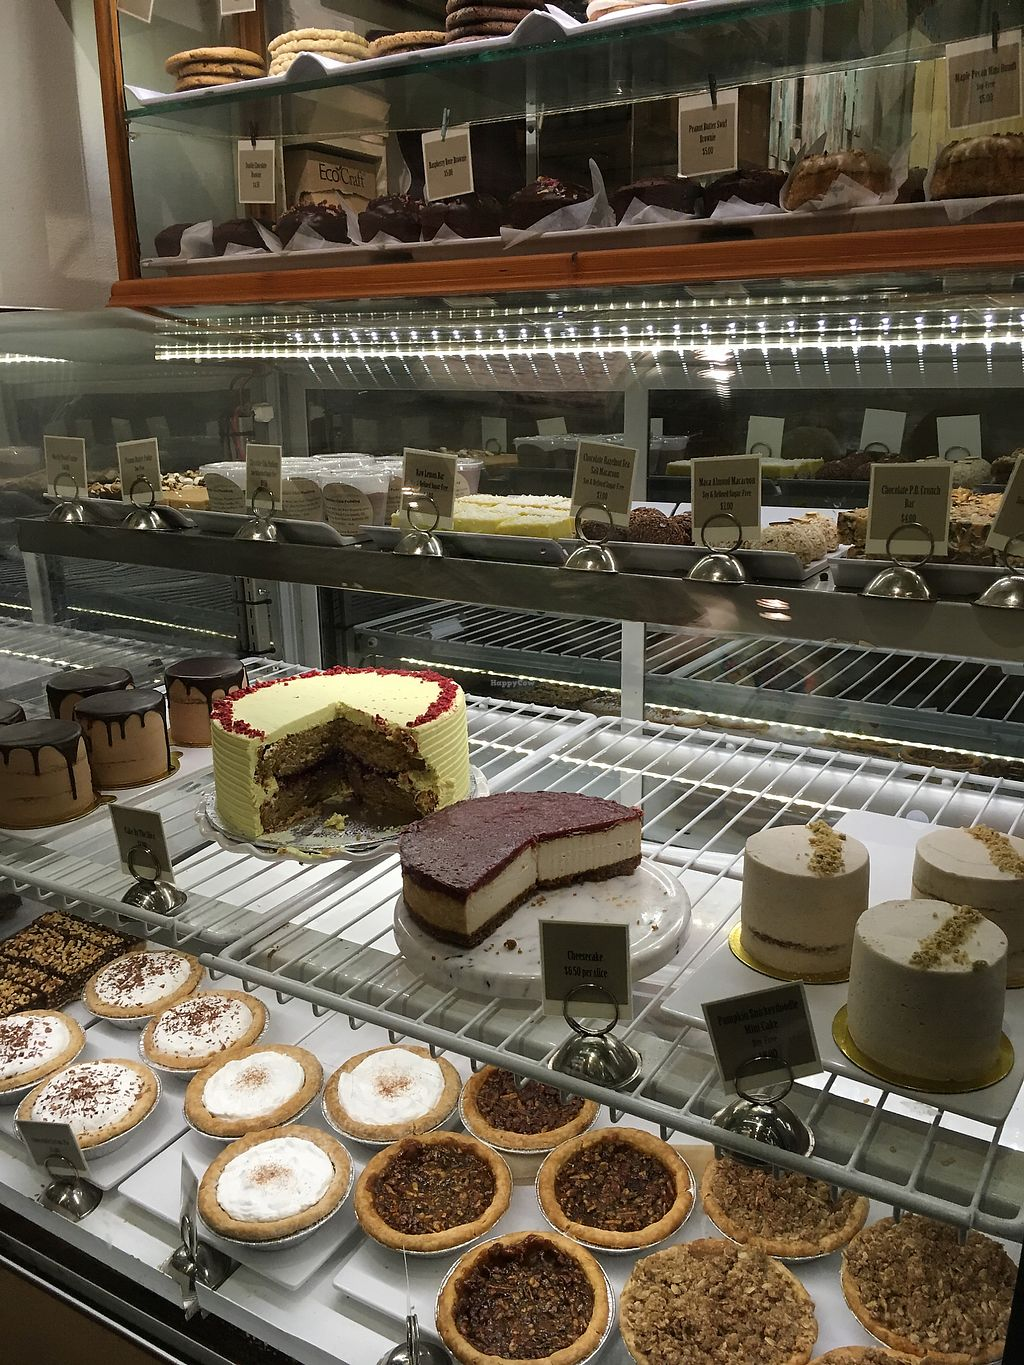 """Photo of Back To Eden Bakery  by <a href=""""/members/profile/DianeH"""">DianeH</a> <br/>So many tasty choices! <br/> December 2, 2017  - <a href='/contact/abuse/image/19063/331351'>Report</a>"""